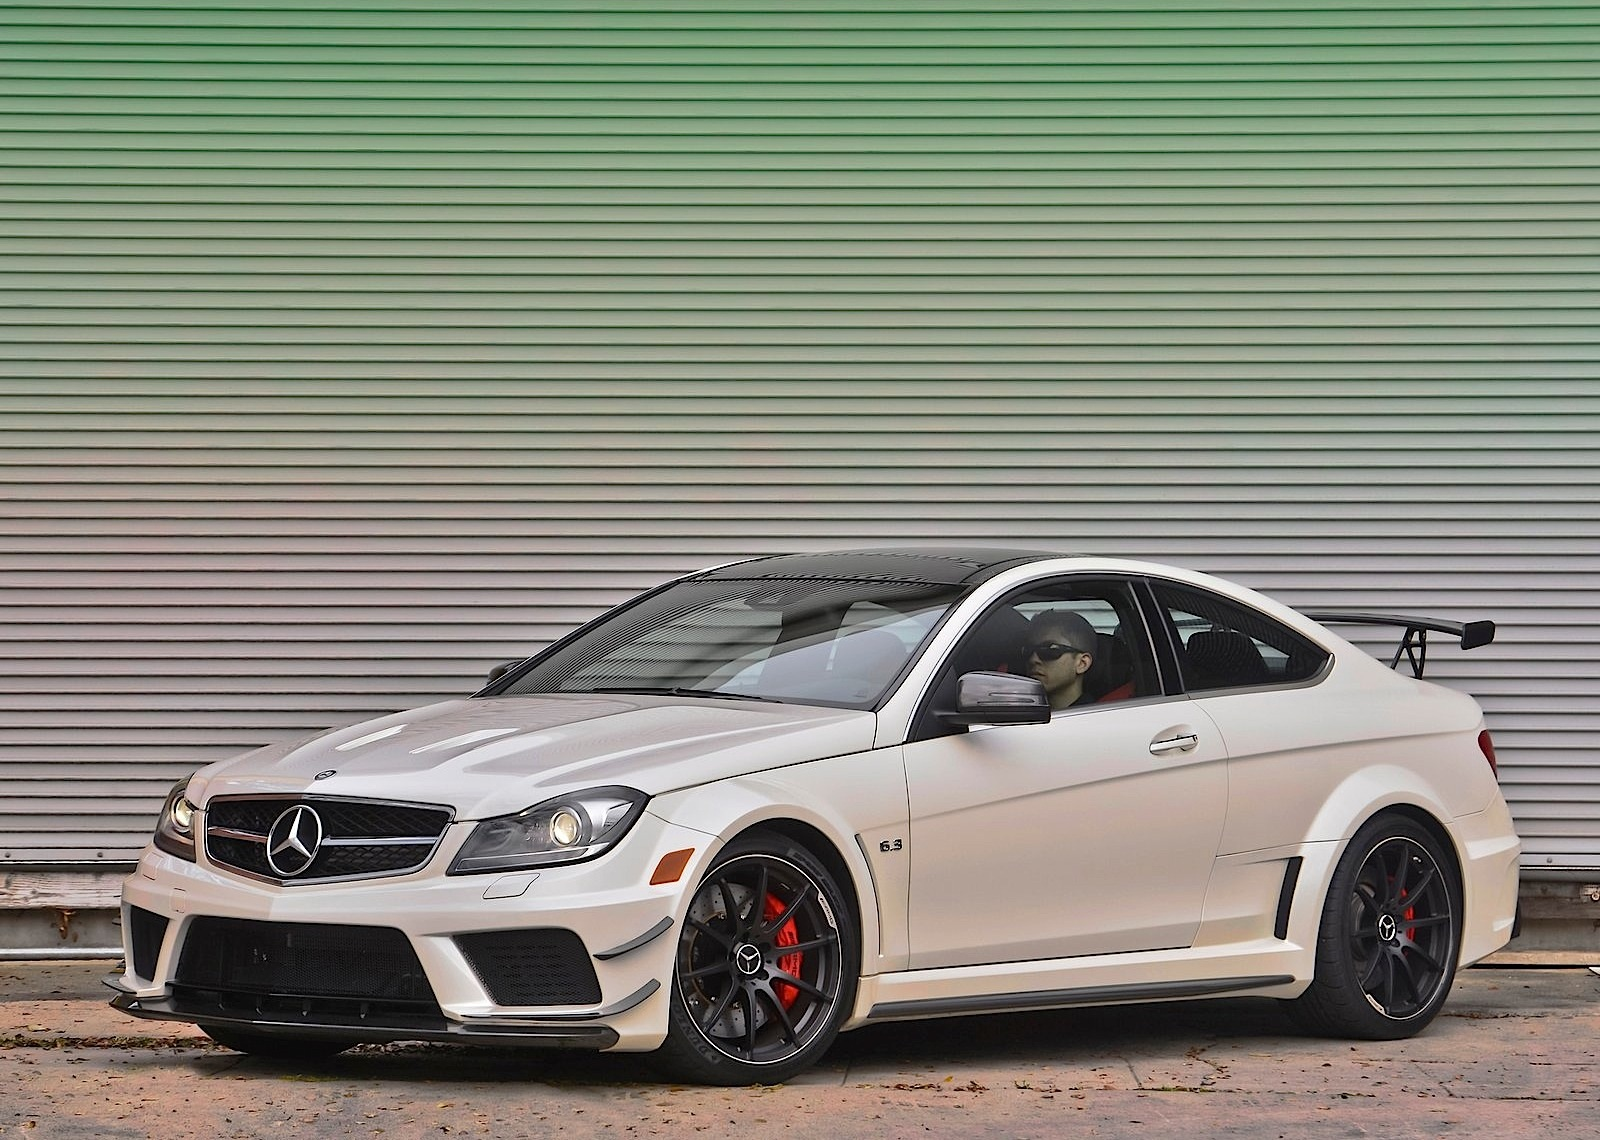 Mercedes c63 amg black series coupe price for Mercedes benz c63 amg sedan